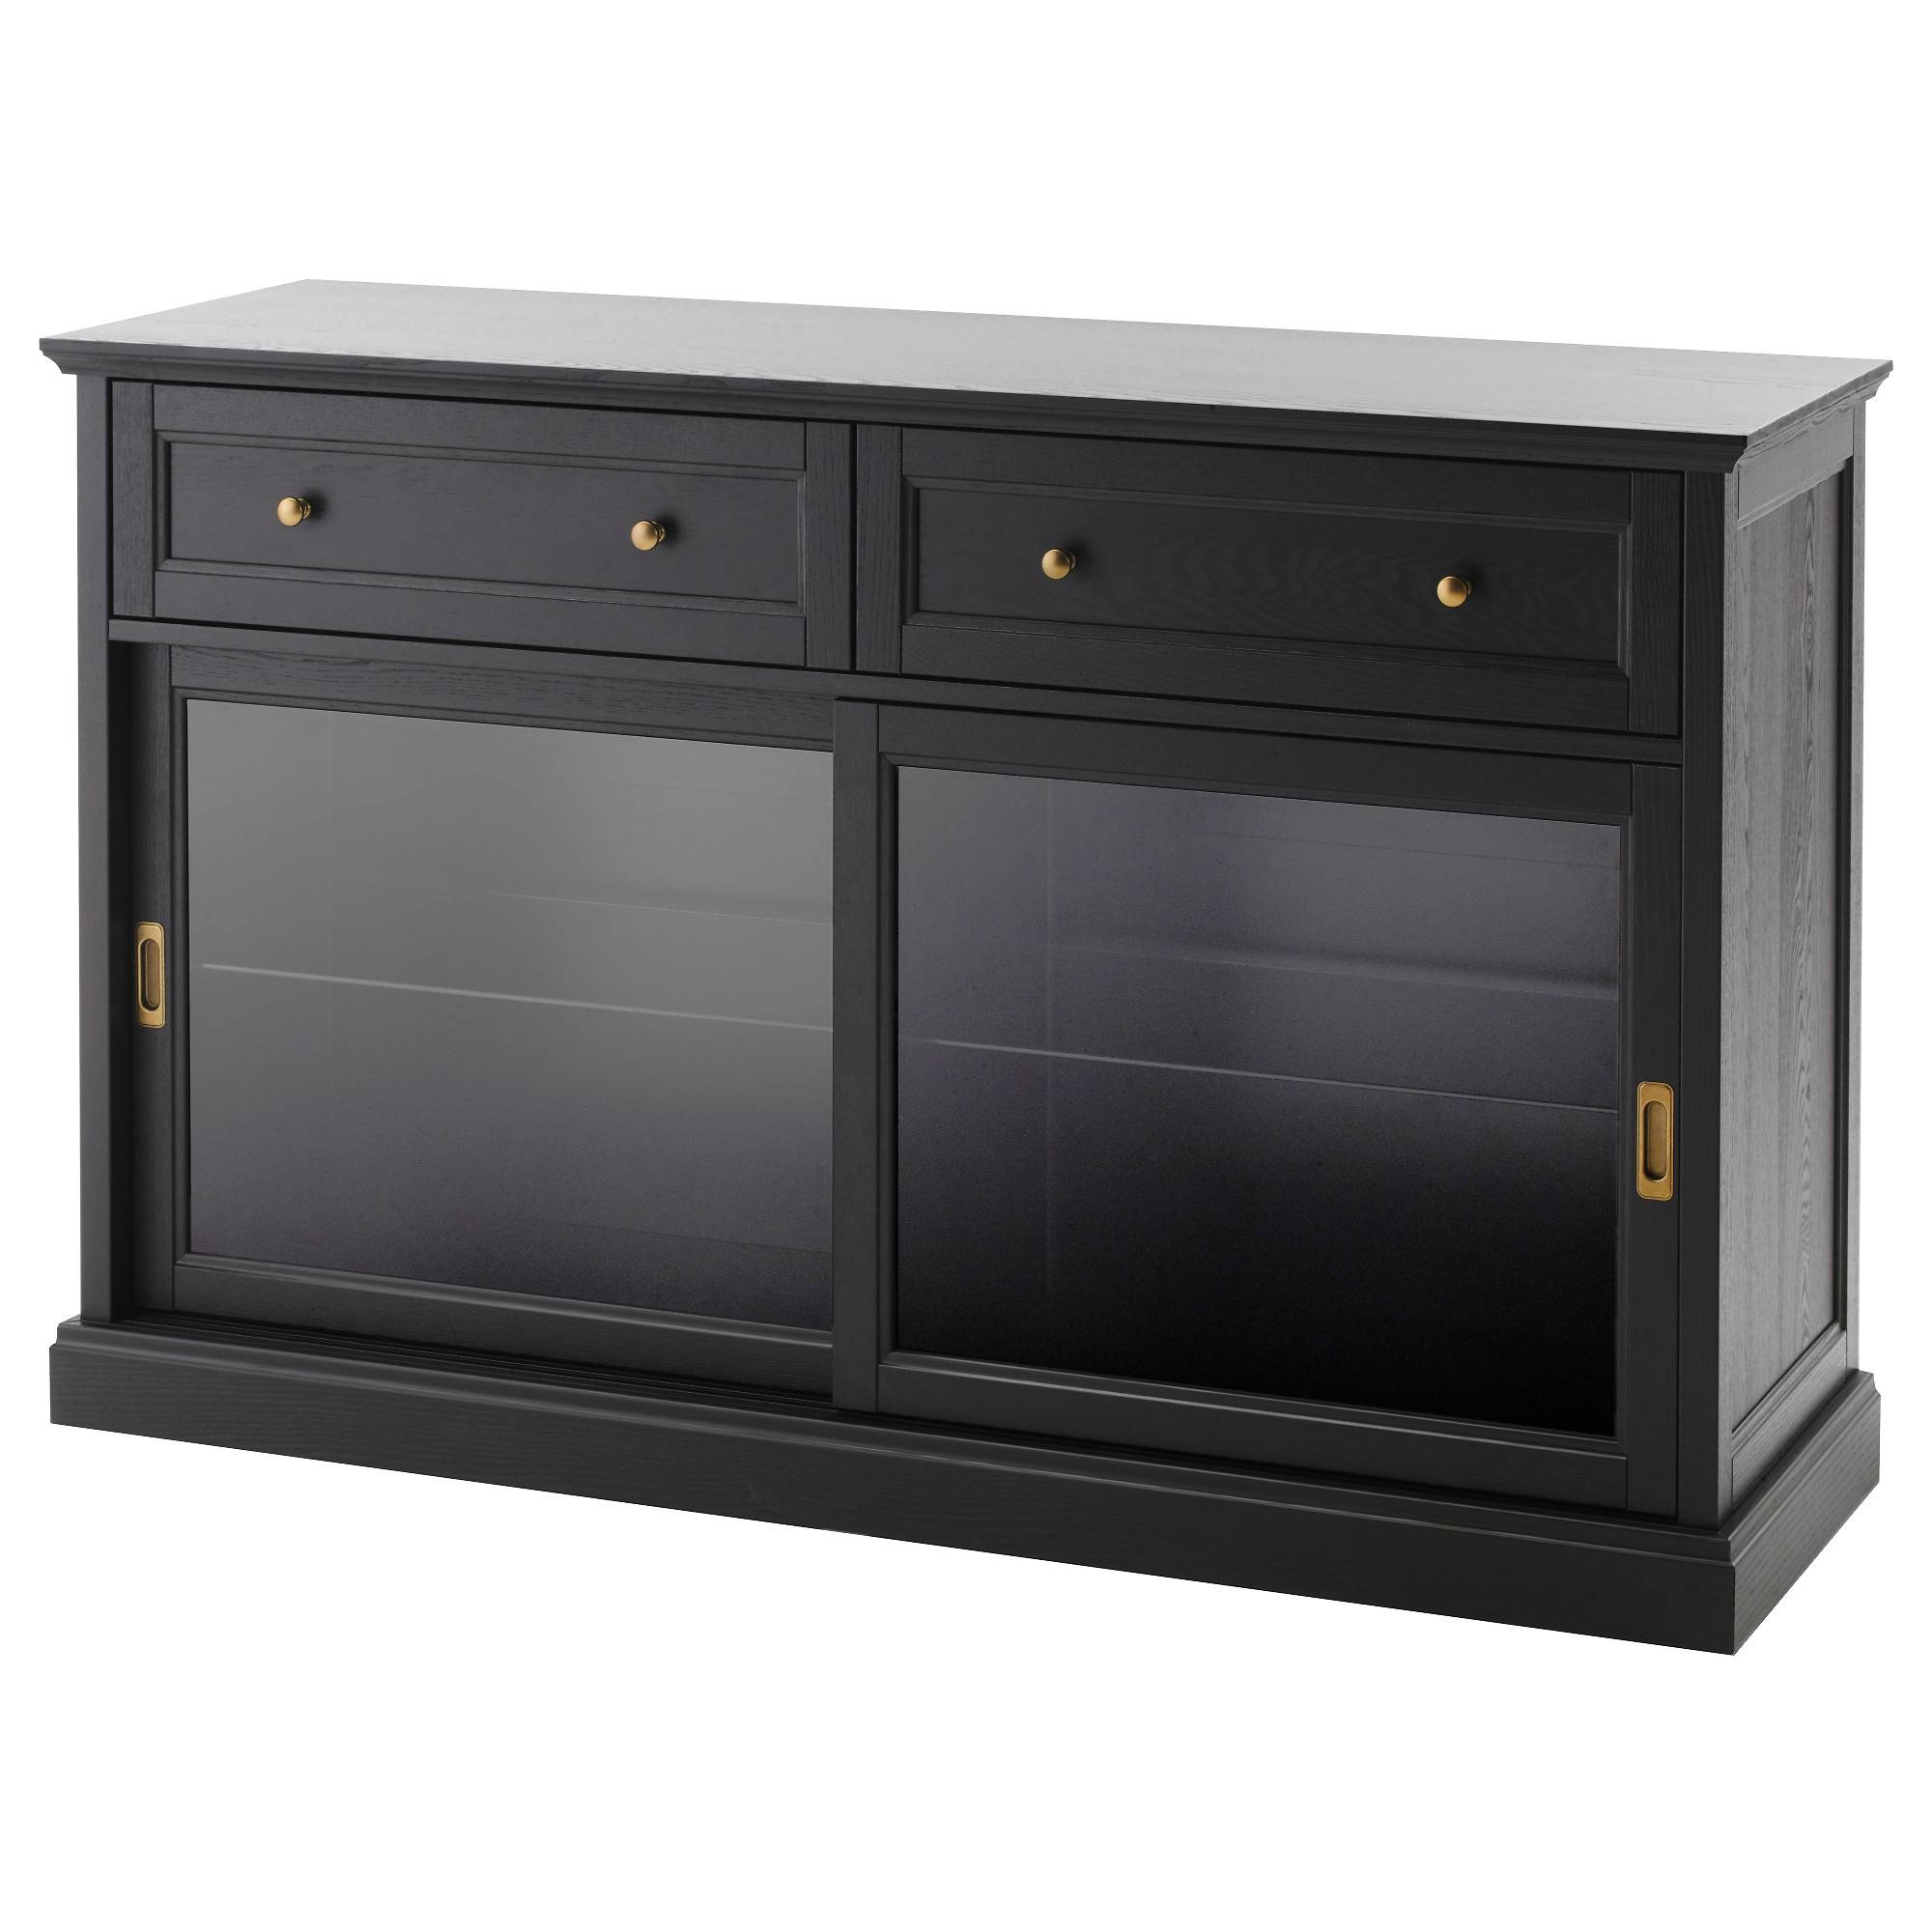 Buffet Tables & Sideboards - Ikea with Black Gloss Sideboards (Image 8 of 30)